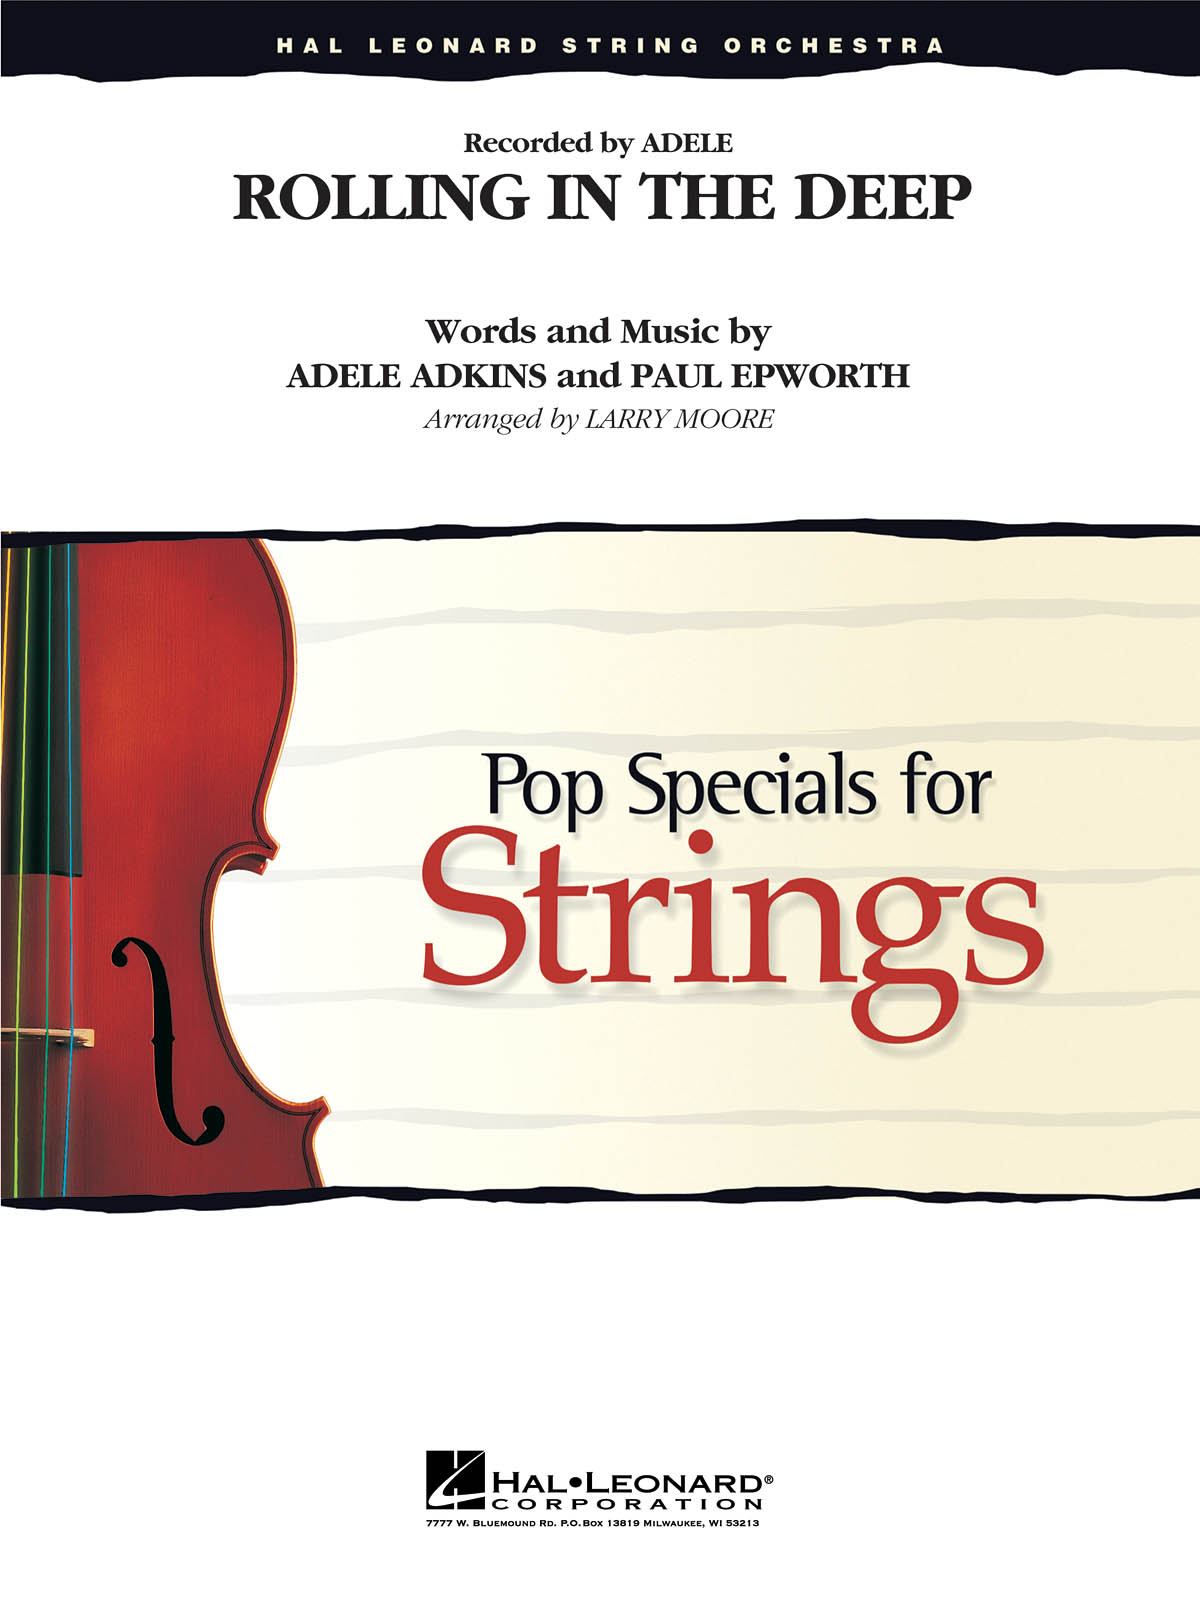 Adele - Rolling In The Deep (arr. Larry Moore) - Score and Parts